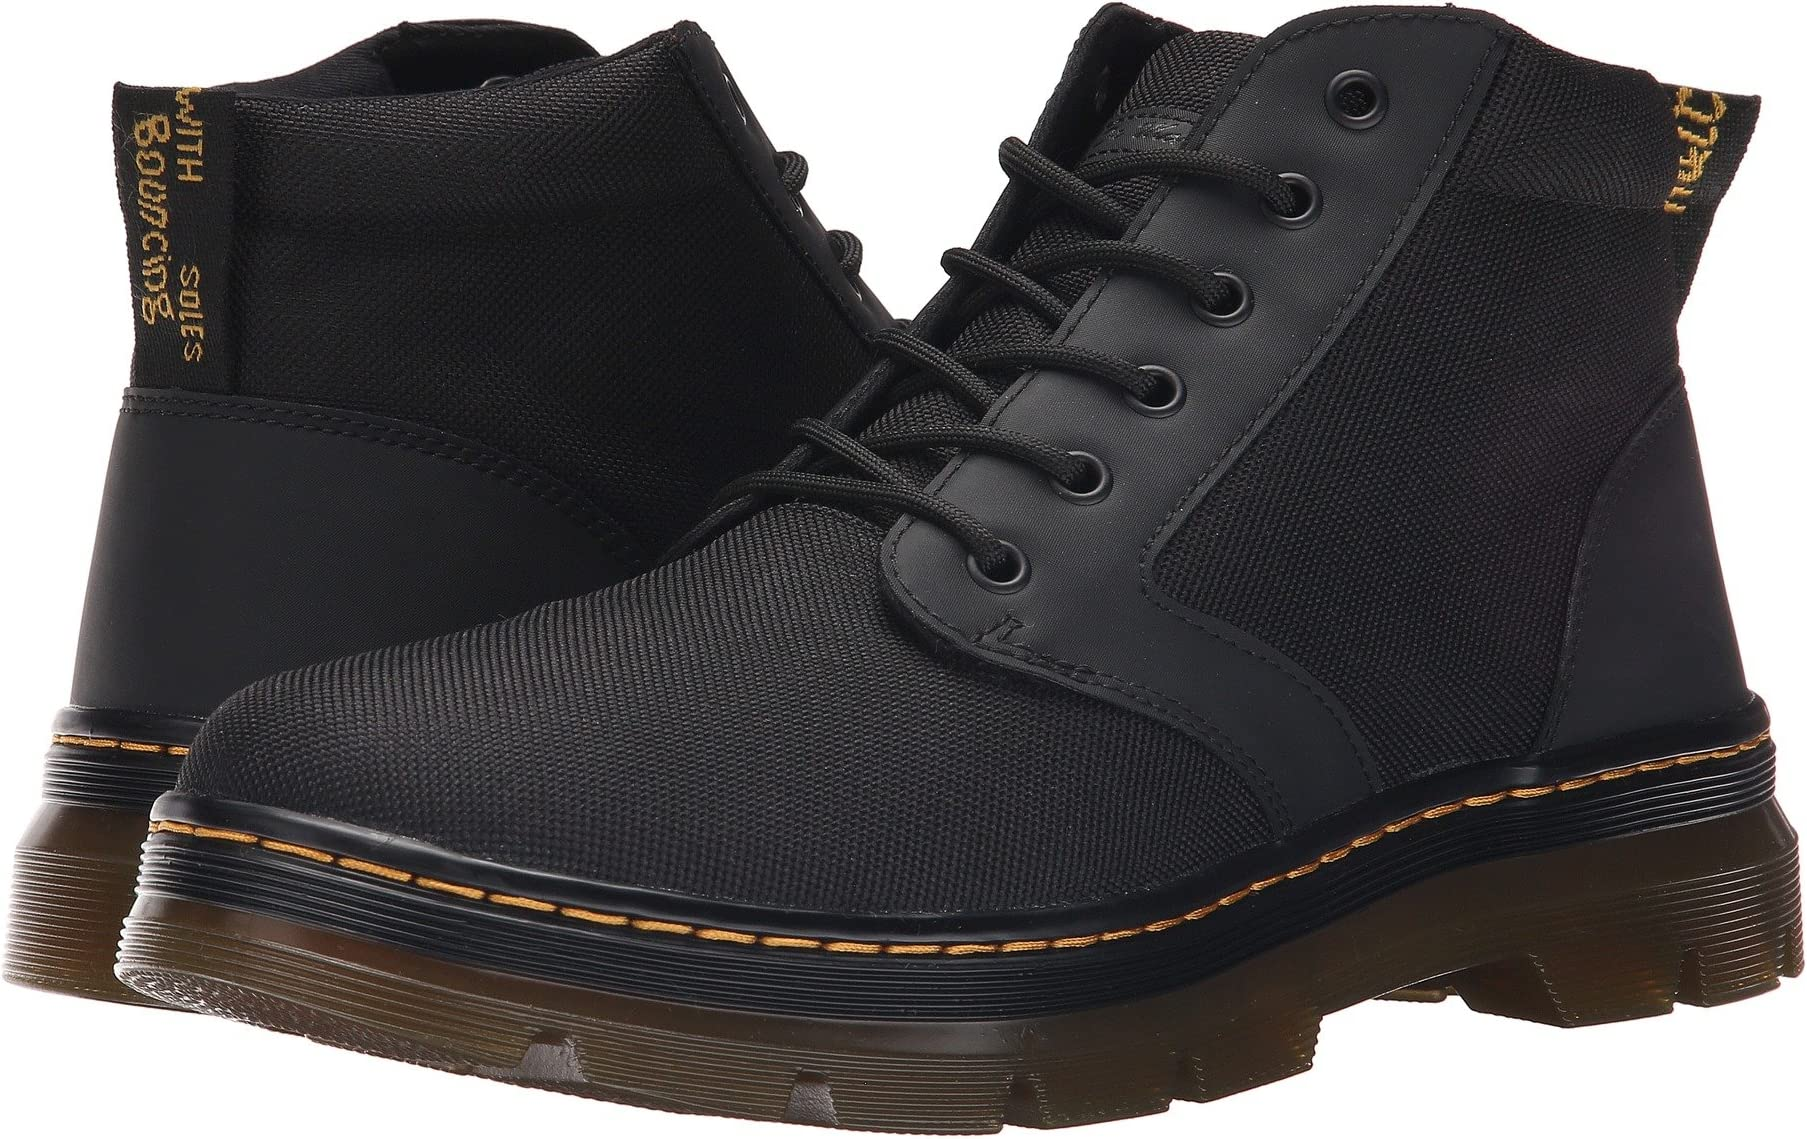 Dr Martens Boots Shoes And More Zappos Com